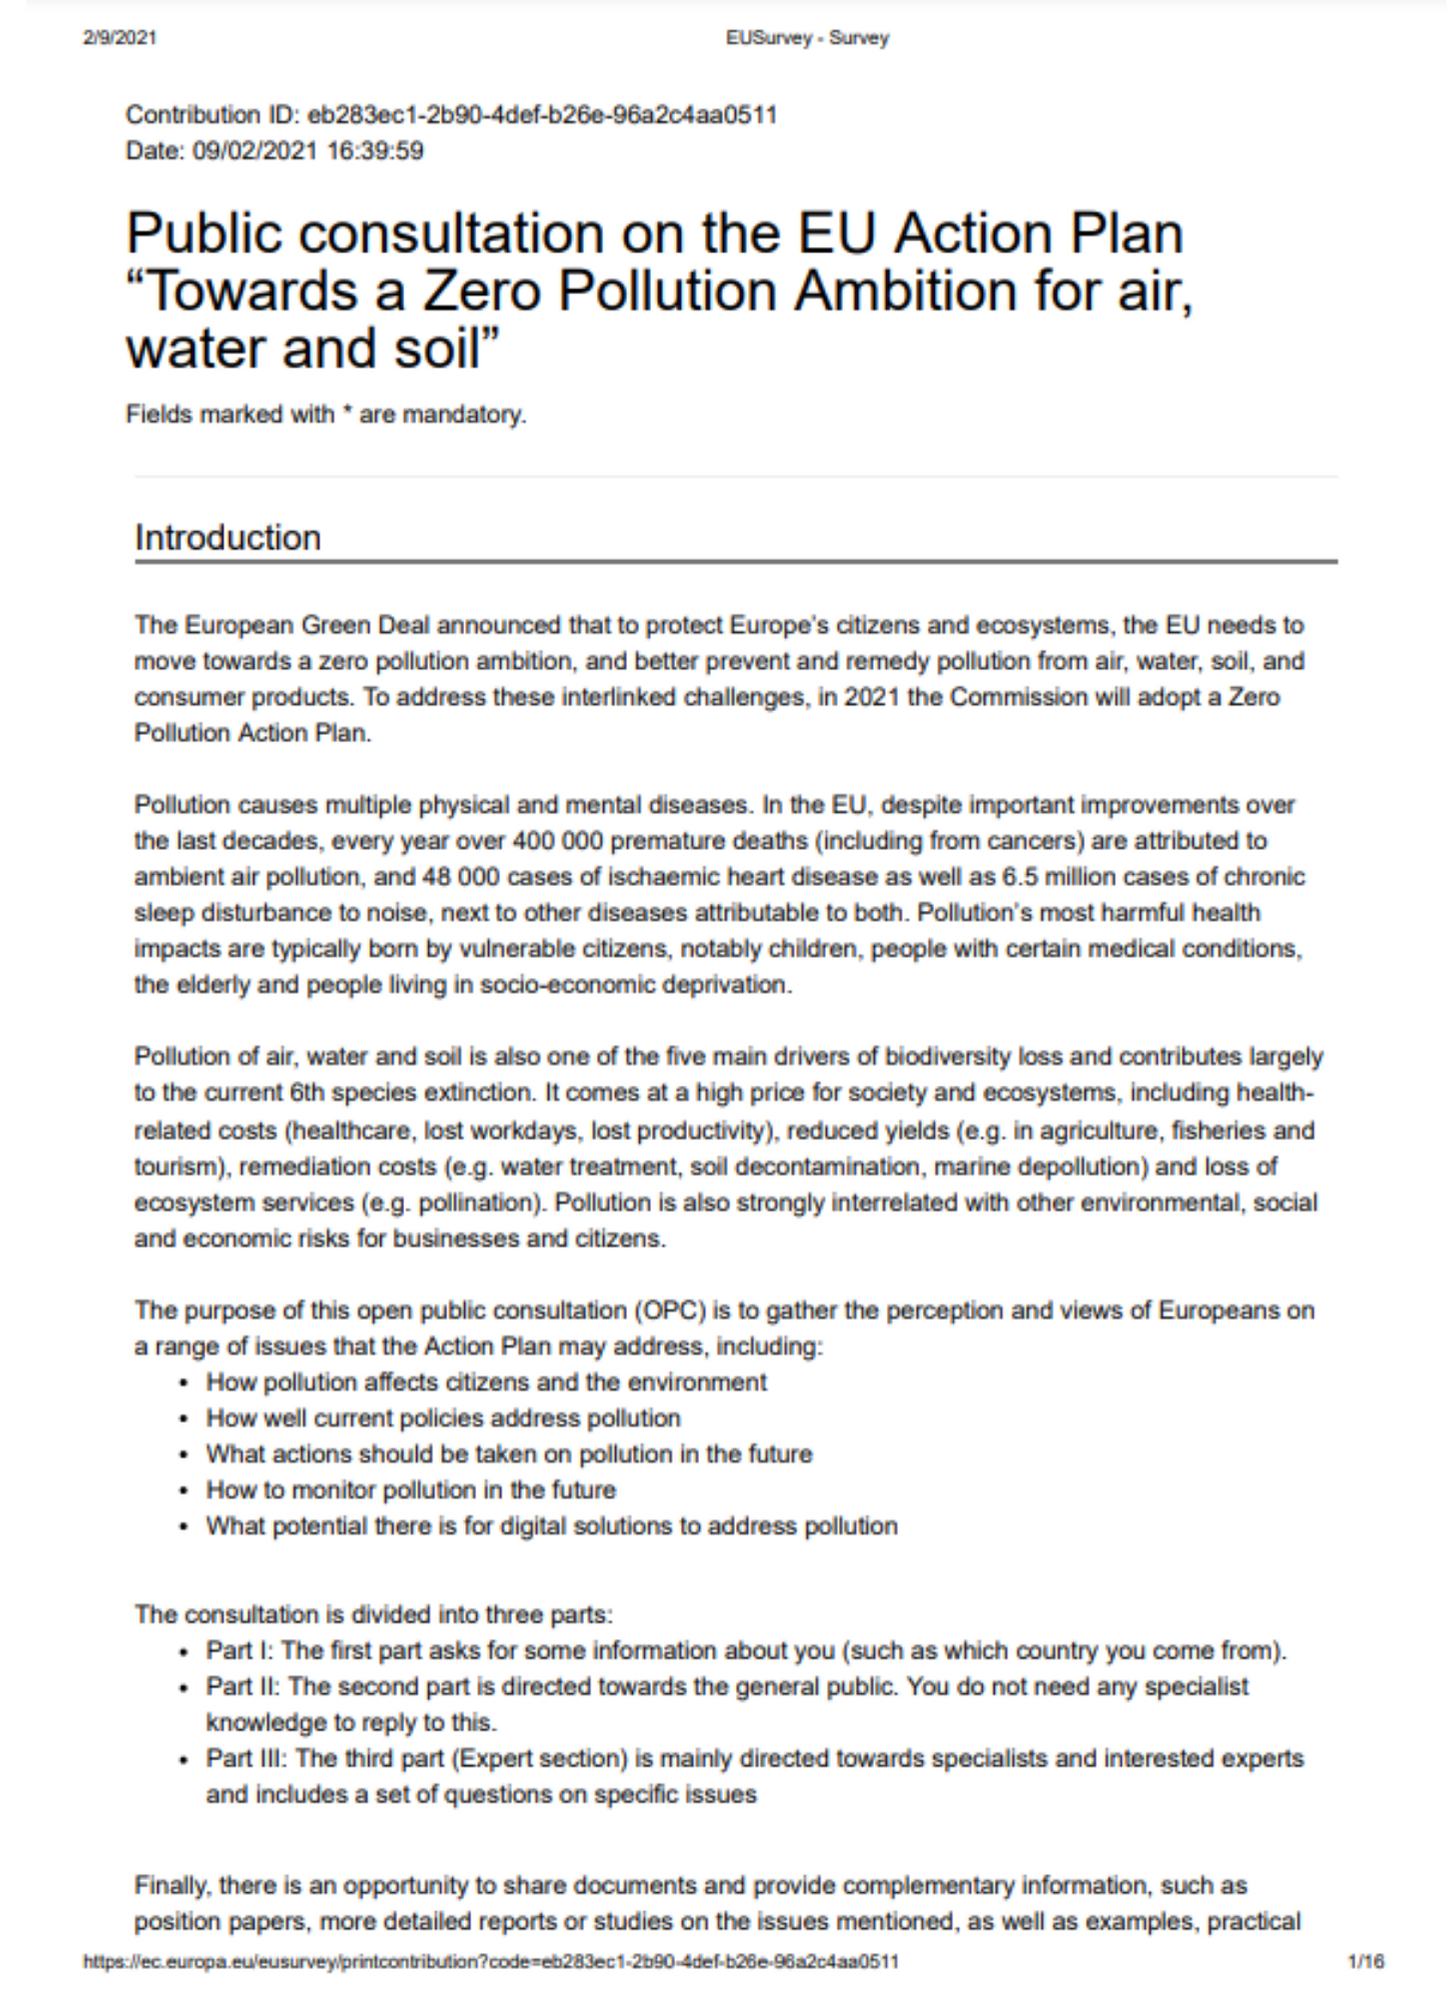 EurEau answer to the public consultation on the Zero Pollution Action Plan